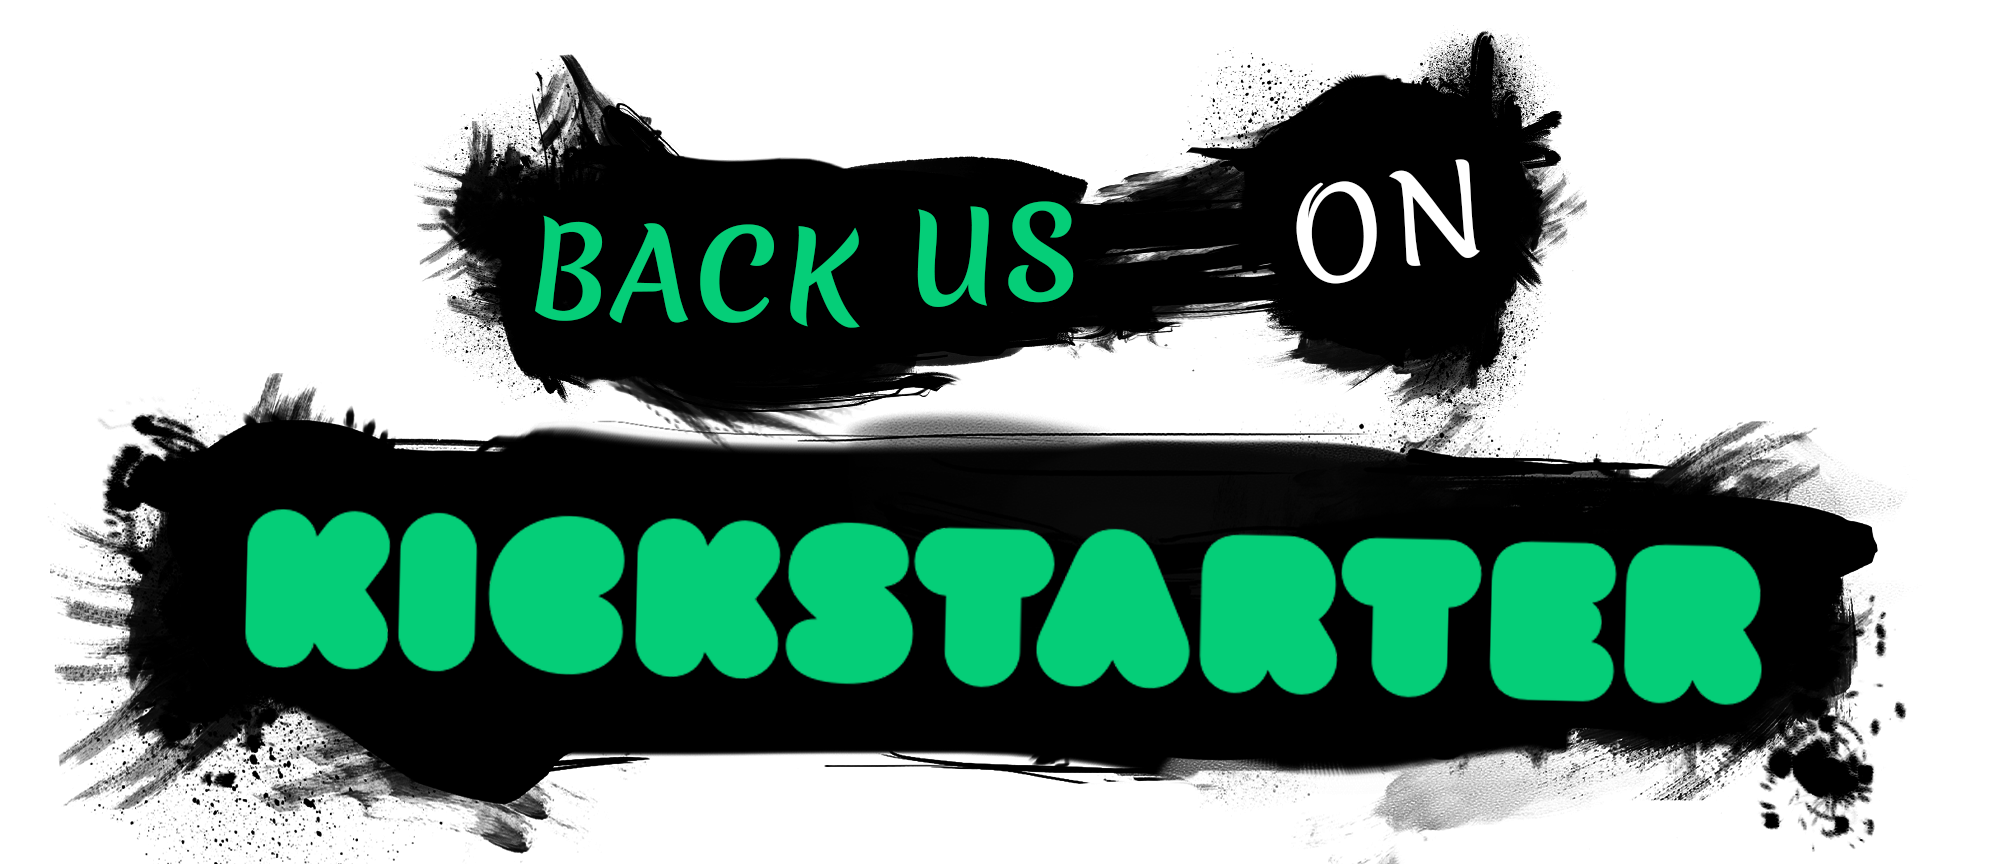 Back us on Kickstarter today!